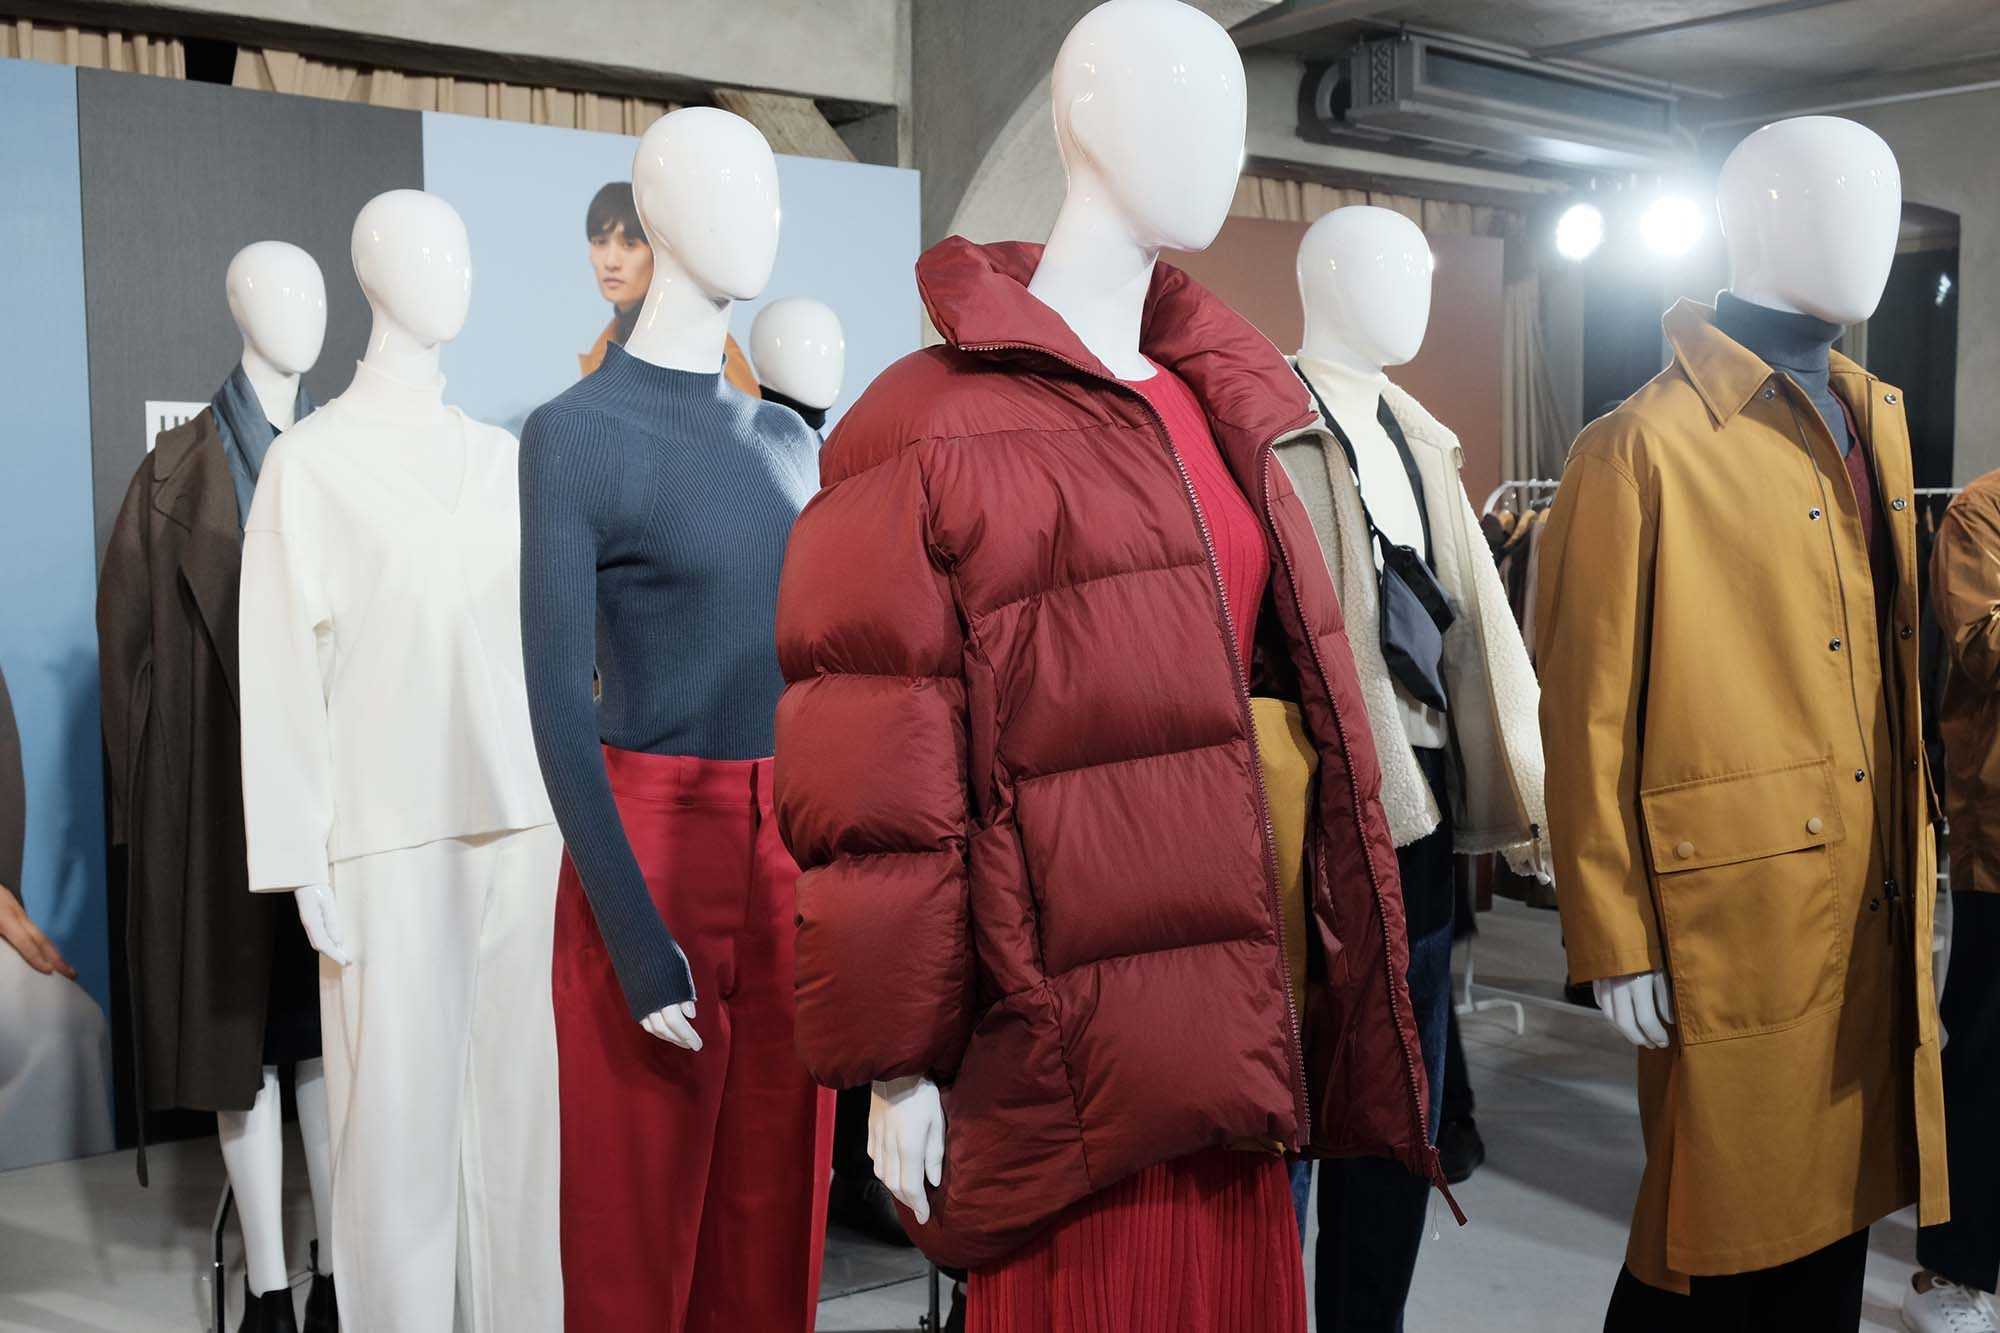 uniqlo-u-2018-aw-collection-preview-01